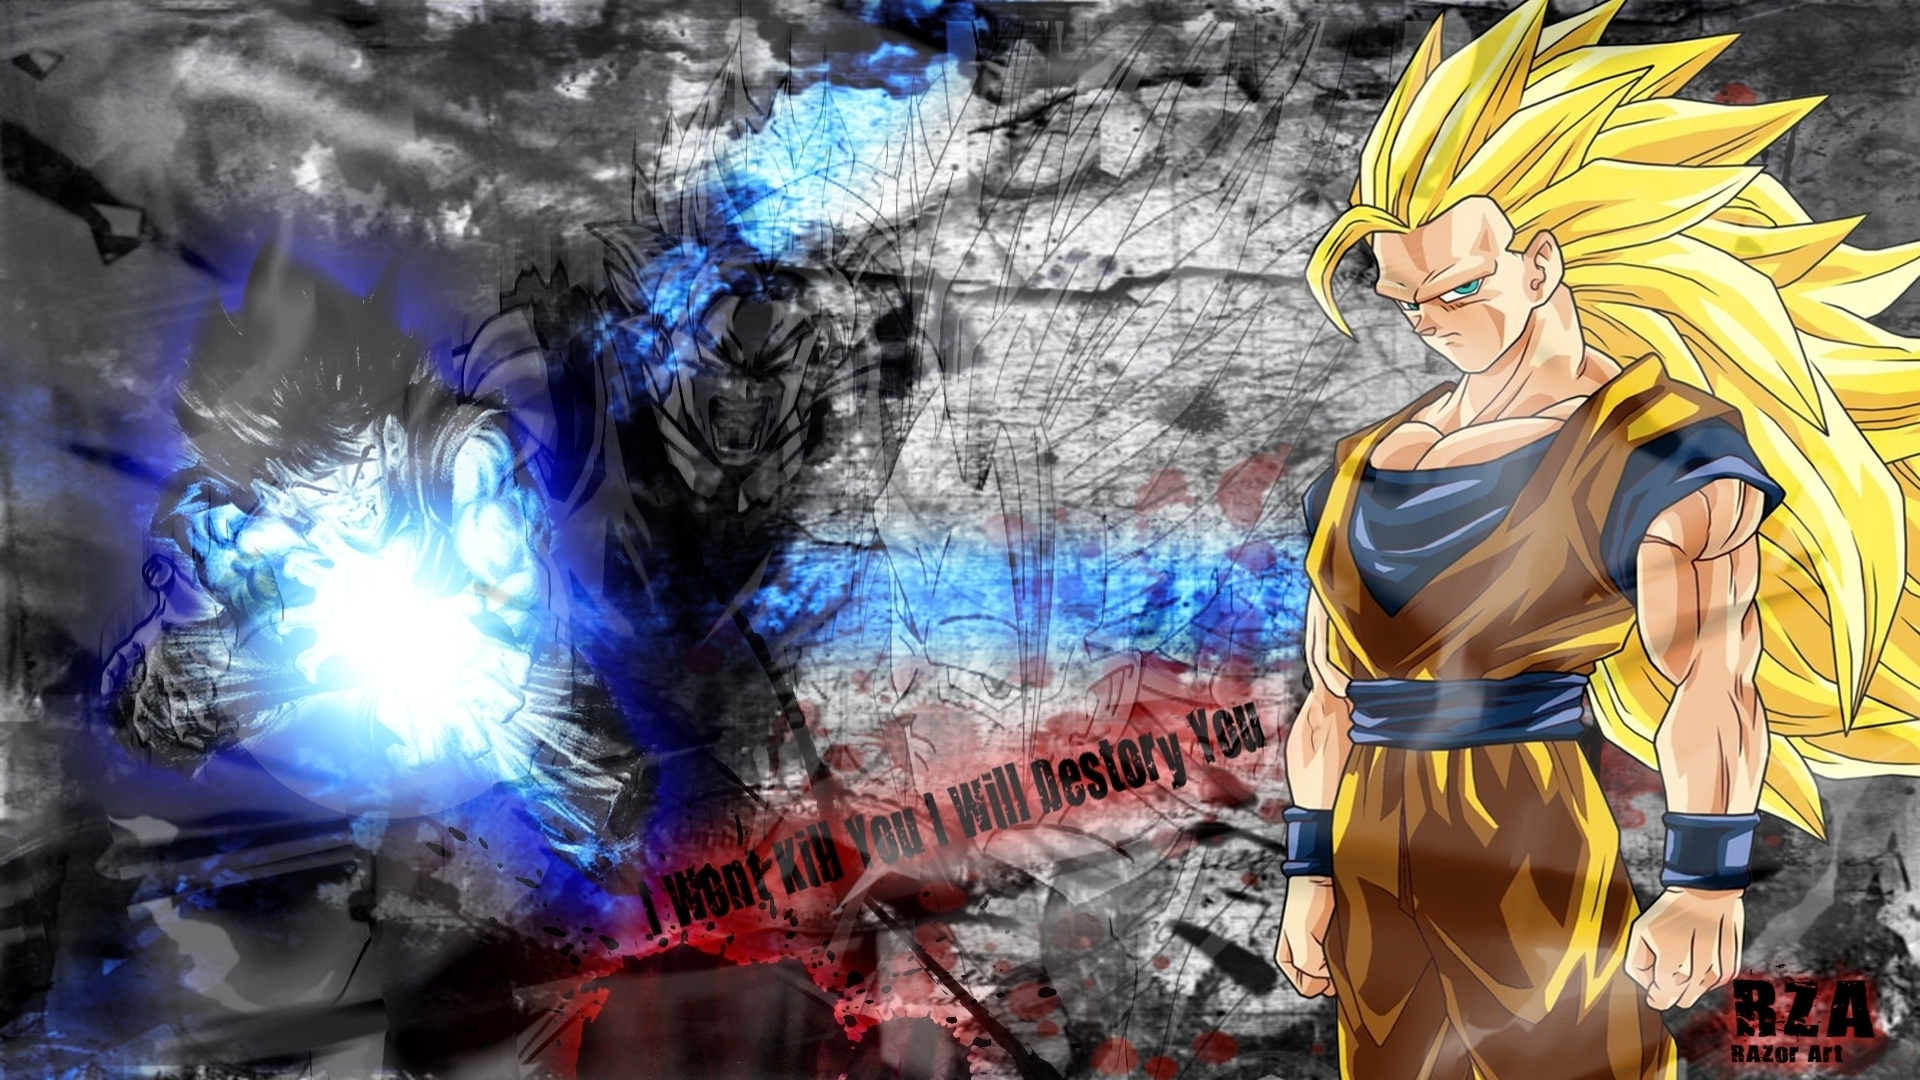 Epic Dbz Wallpapers High Resolution: Page 5 Of Ball Wallpapers, Photos And Desktop Backgrounds